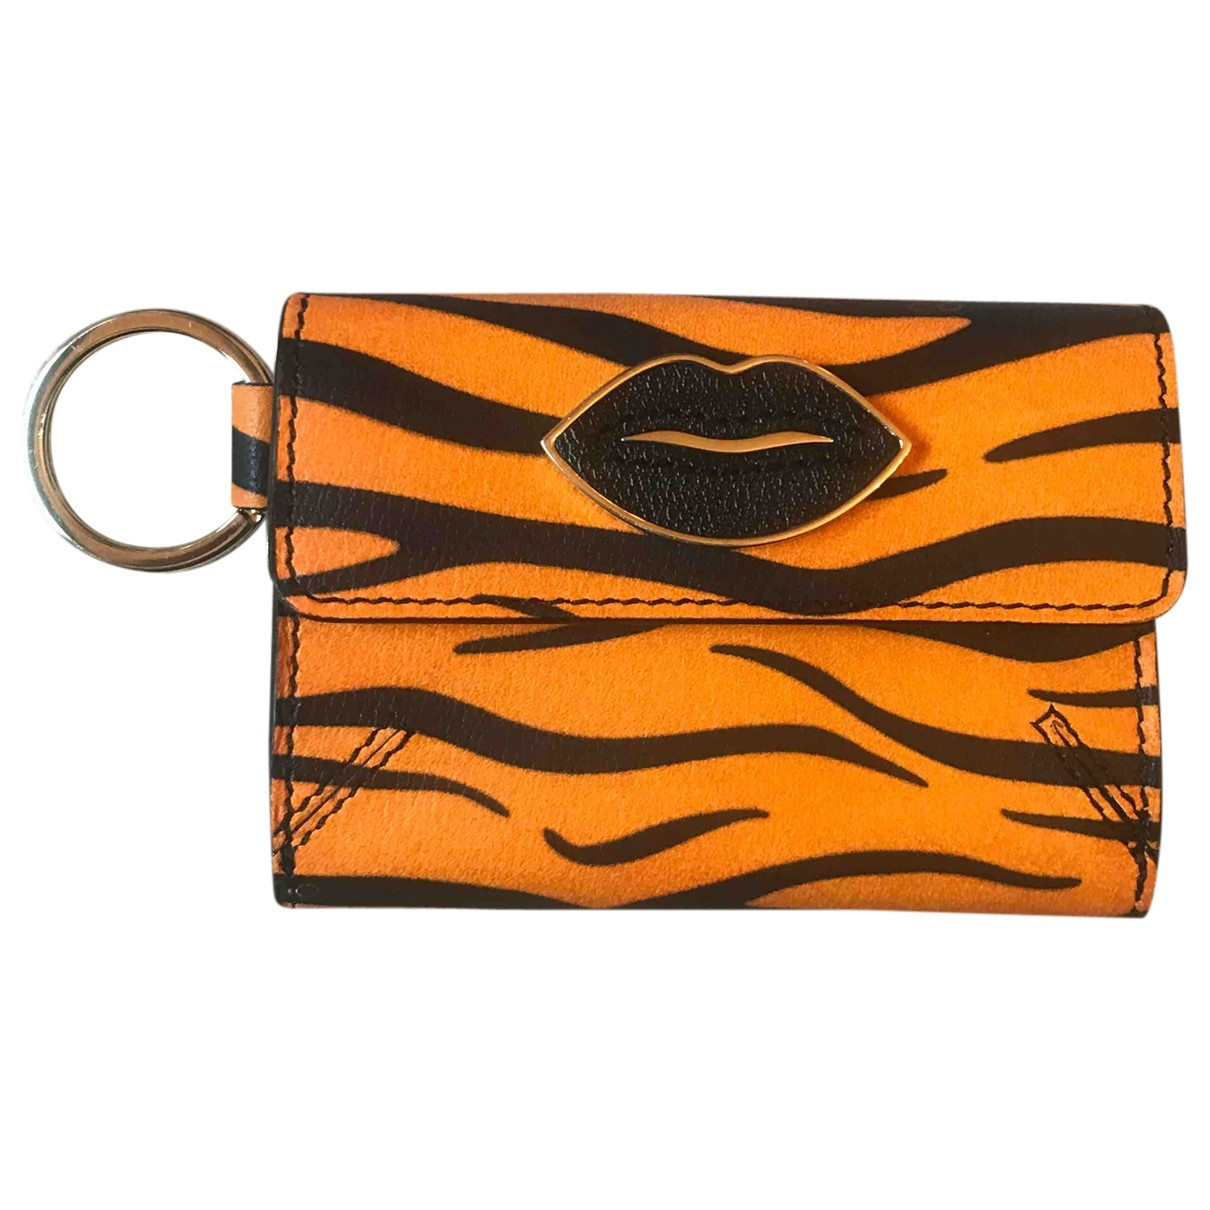 Charlotte Olympia \N Orange Leather wallet for Women \N